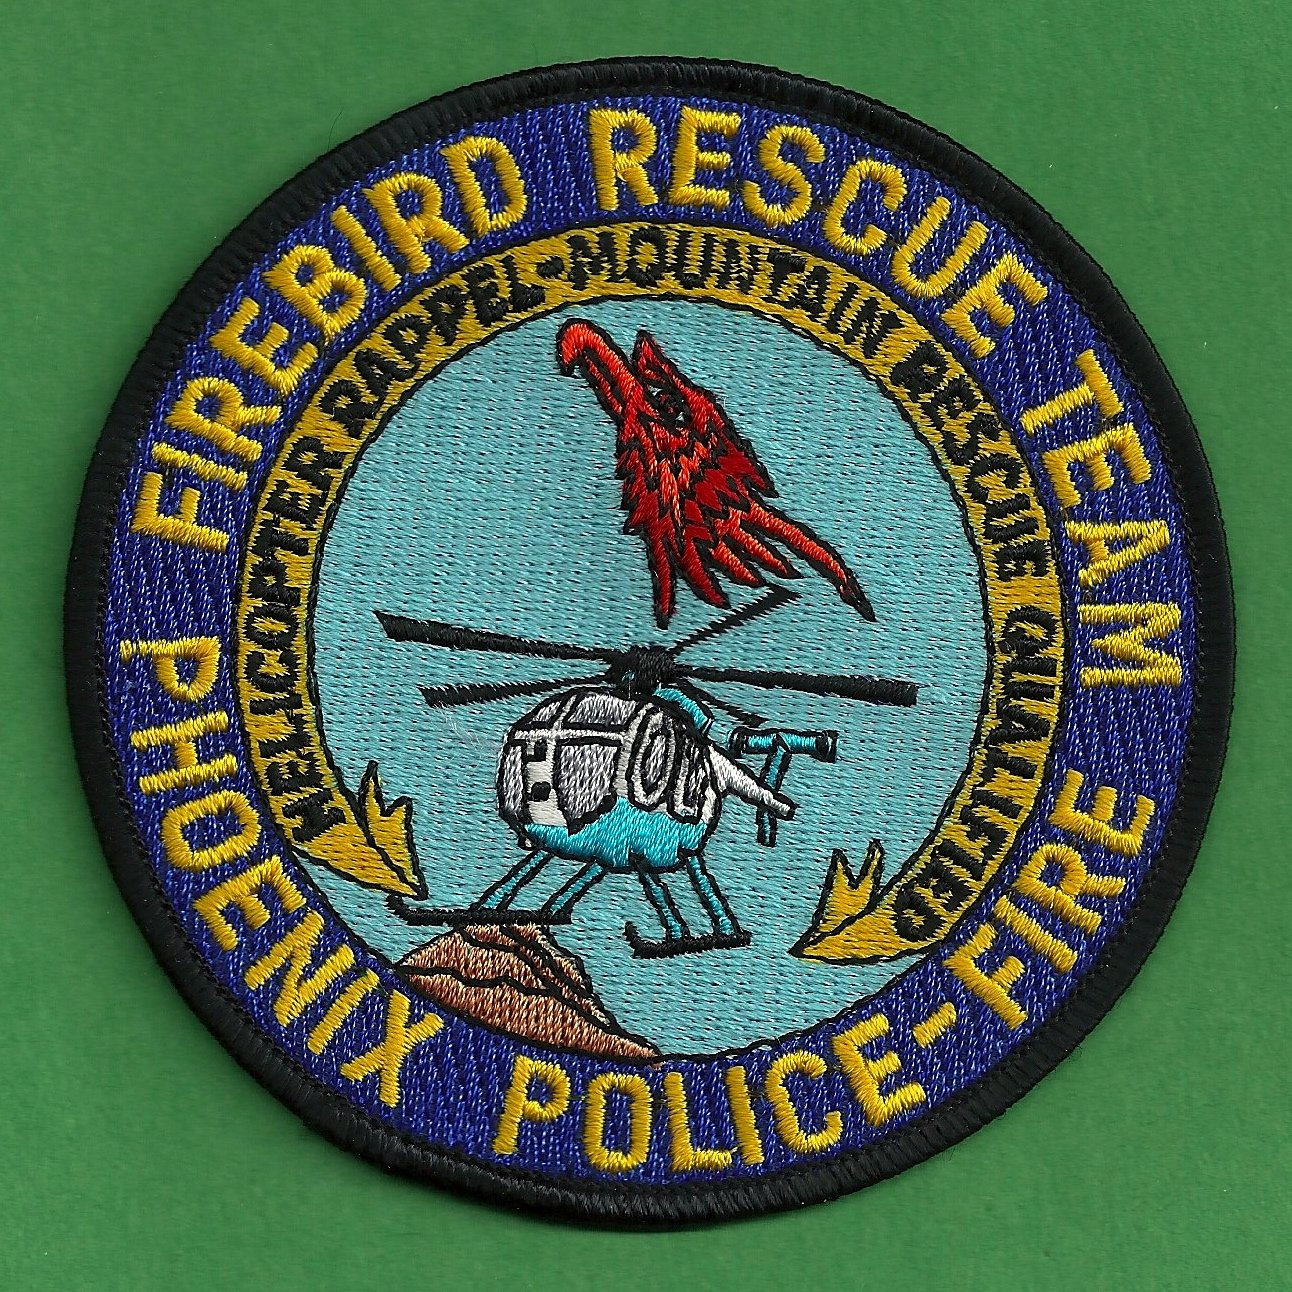 Phoenix arizona police fire helicopter rescue team patch for Jewelry stores in gwinnett county ga